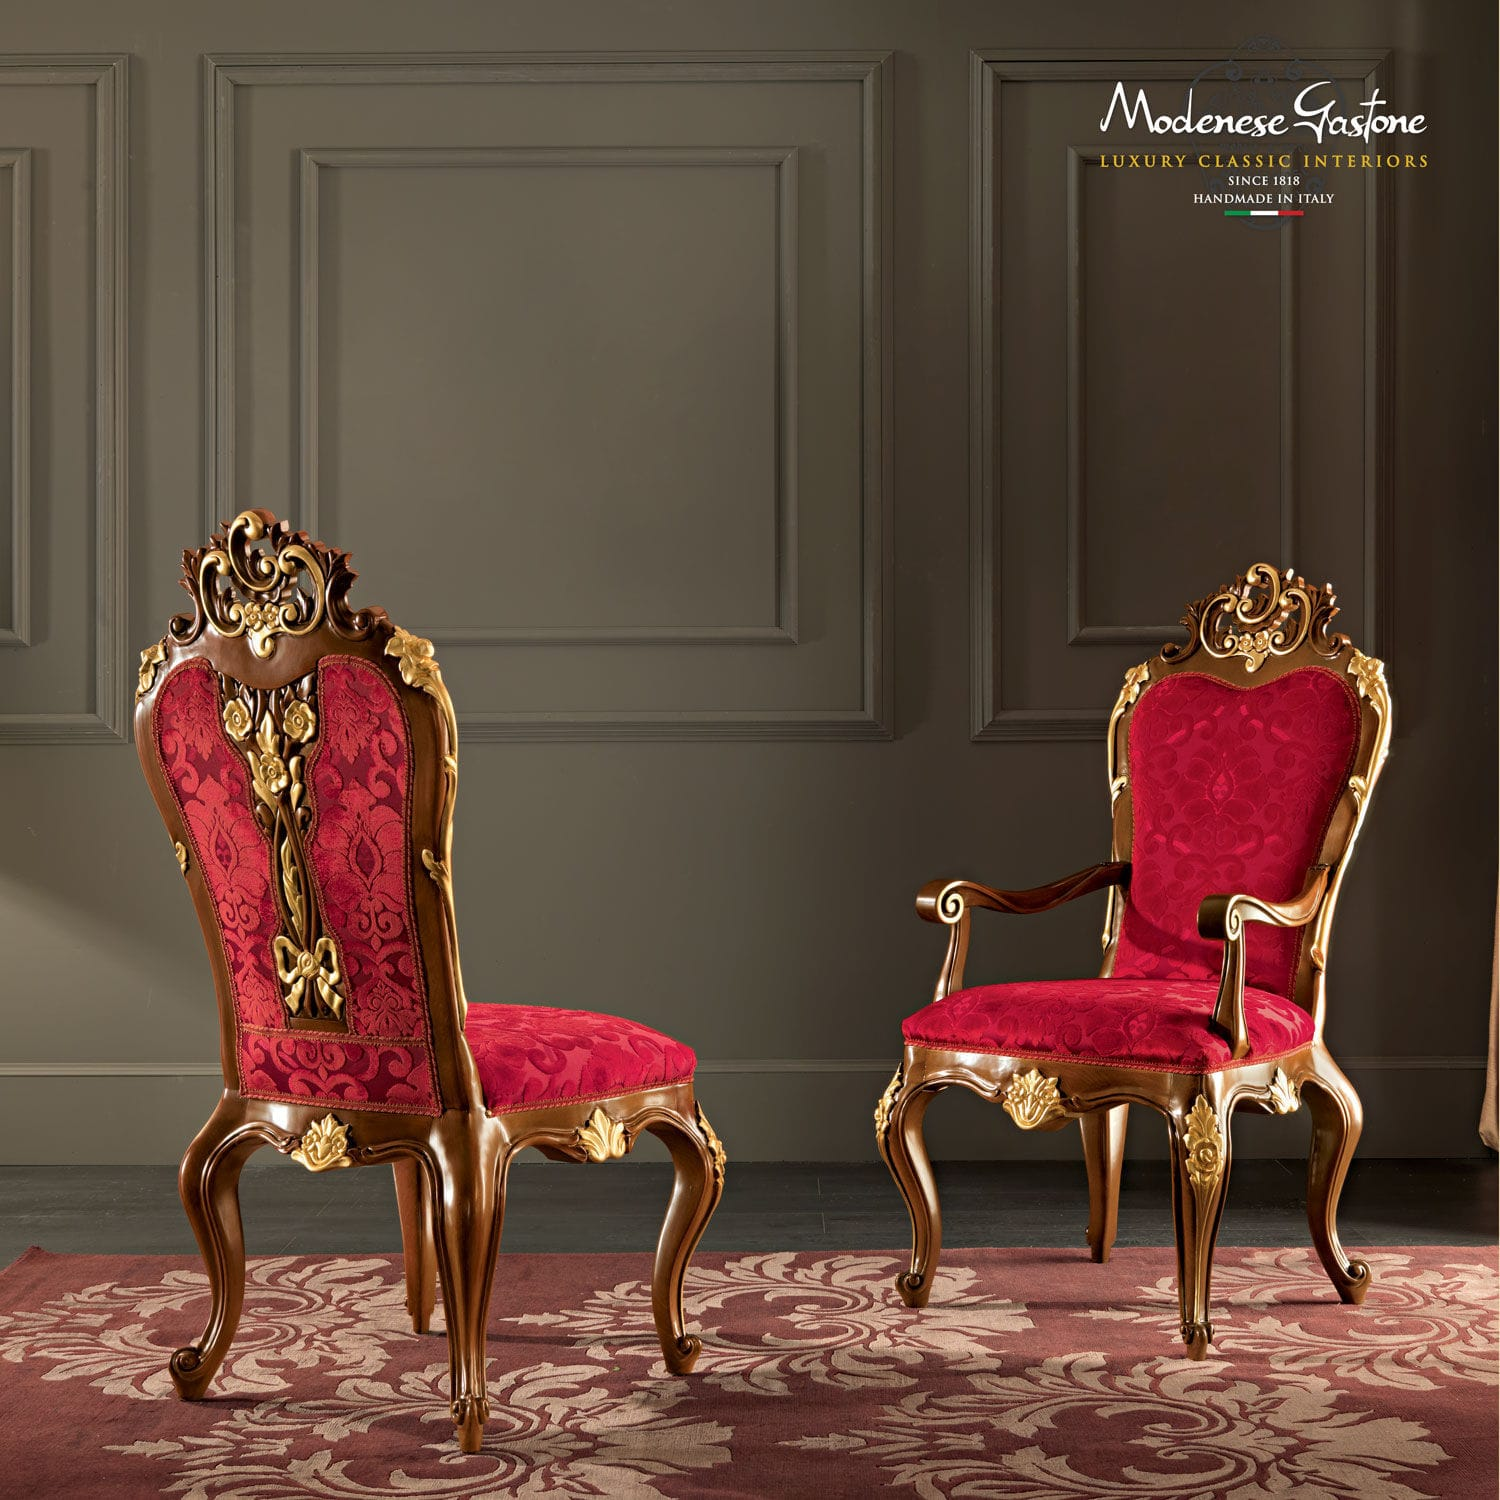 Brilliant Classic Armchair Velvet Villa Venezia 11501 Modenese Machost Co Dining Chair Design Ideas Machostcouk